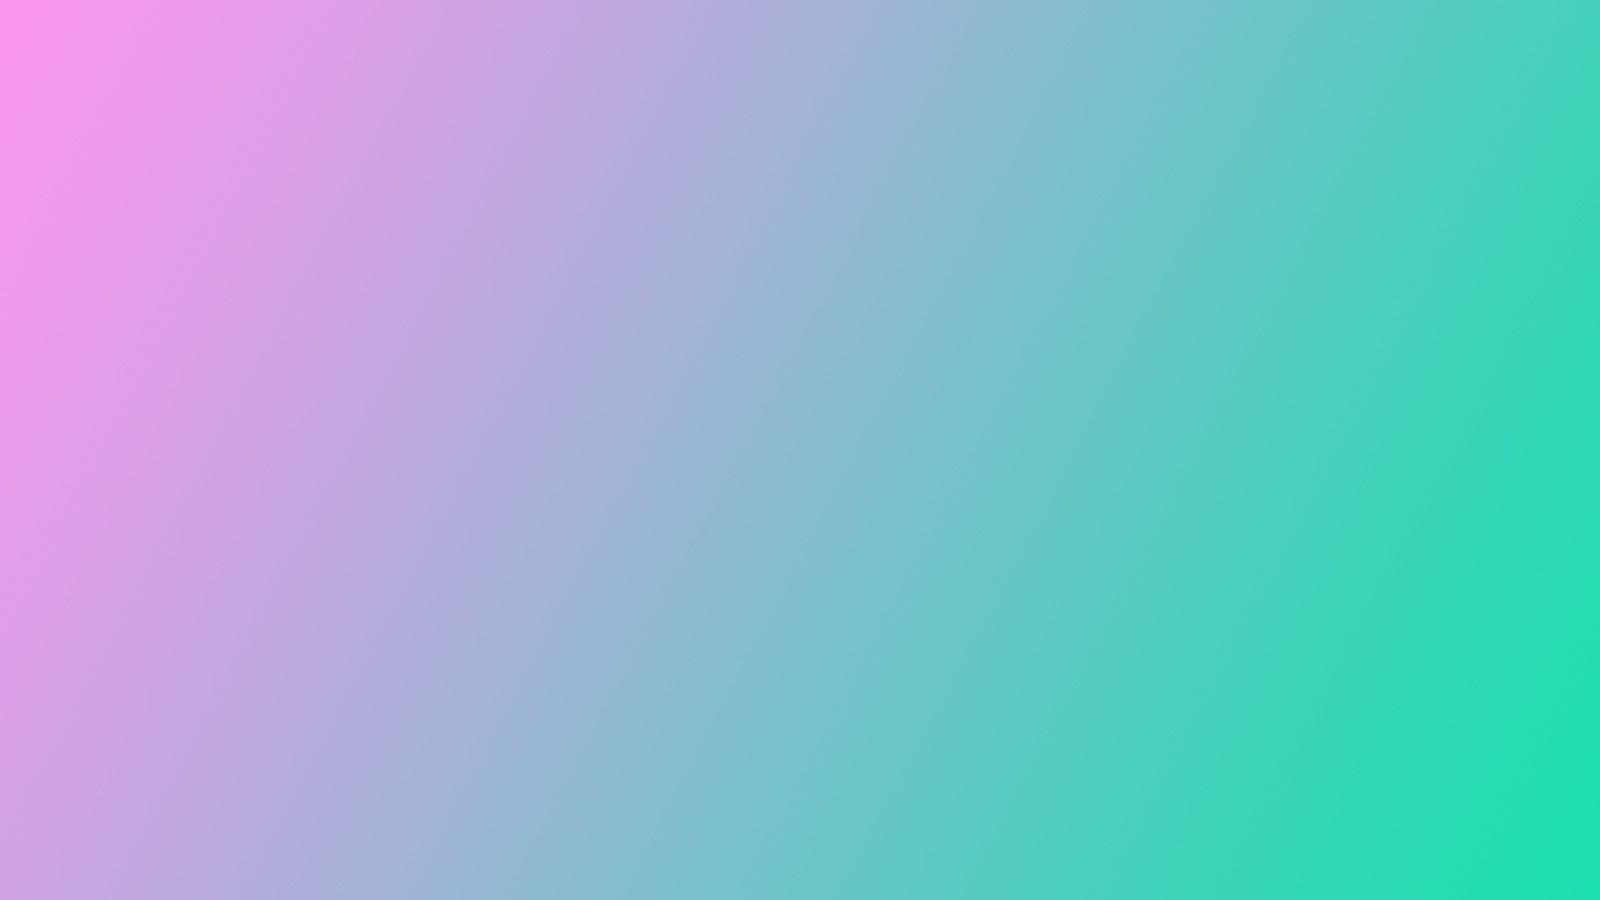 Pastel Backgrounds Image - Wallpaper Cave